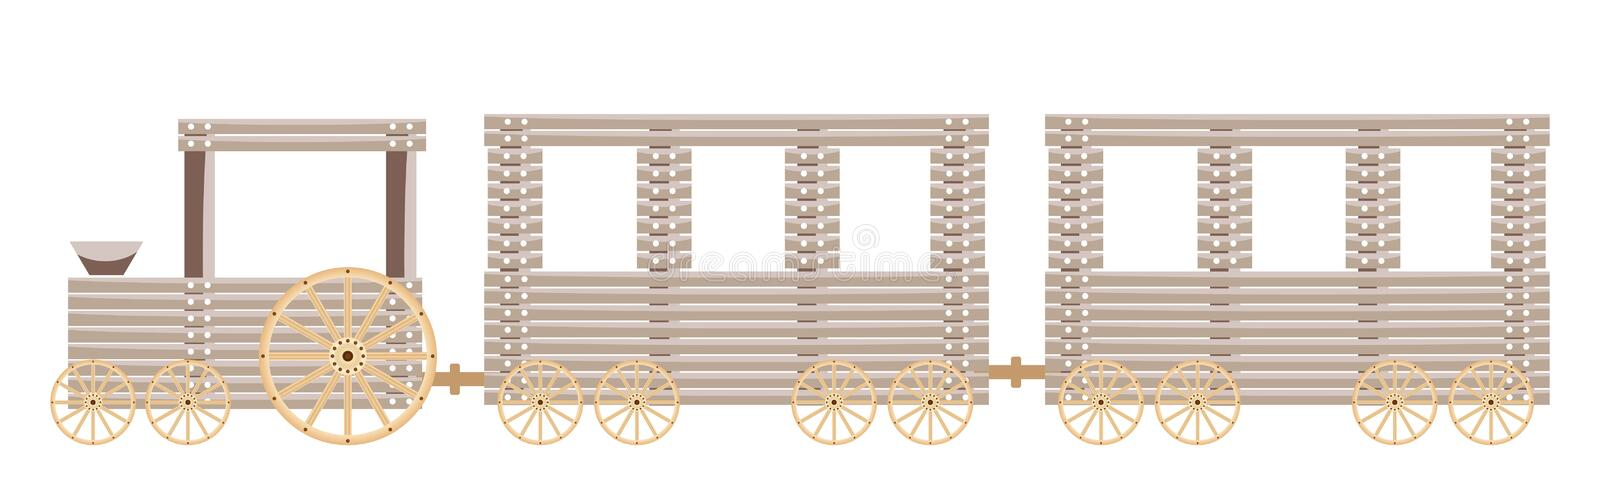 Wooden train isolated on white background. Vector illustration royalty free illustration